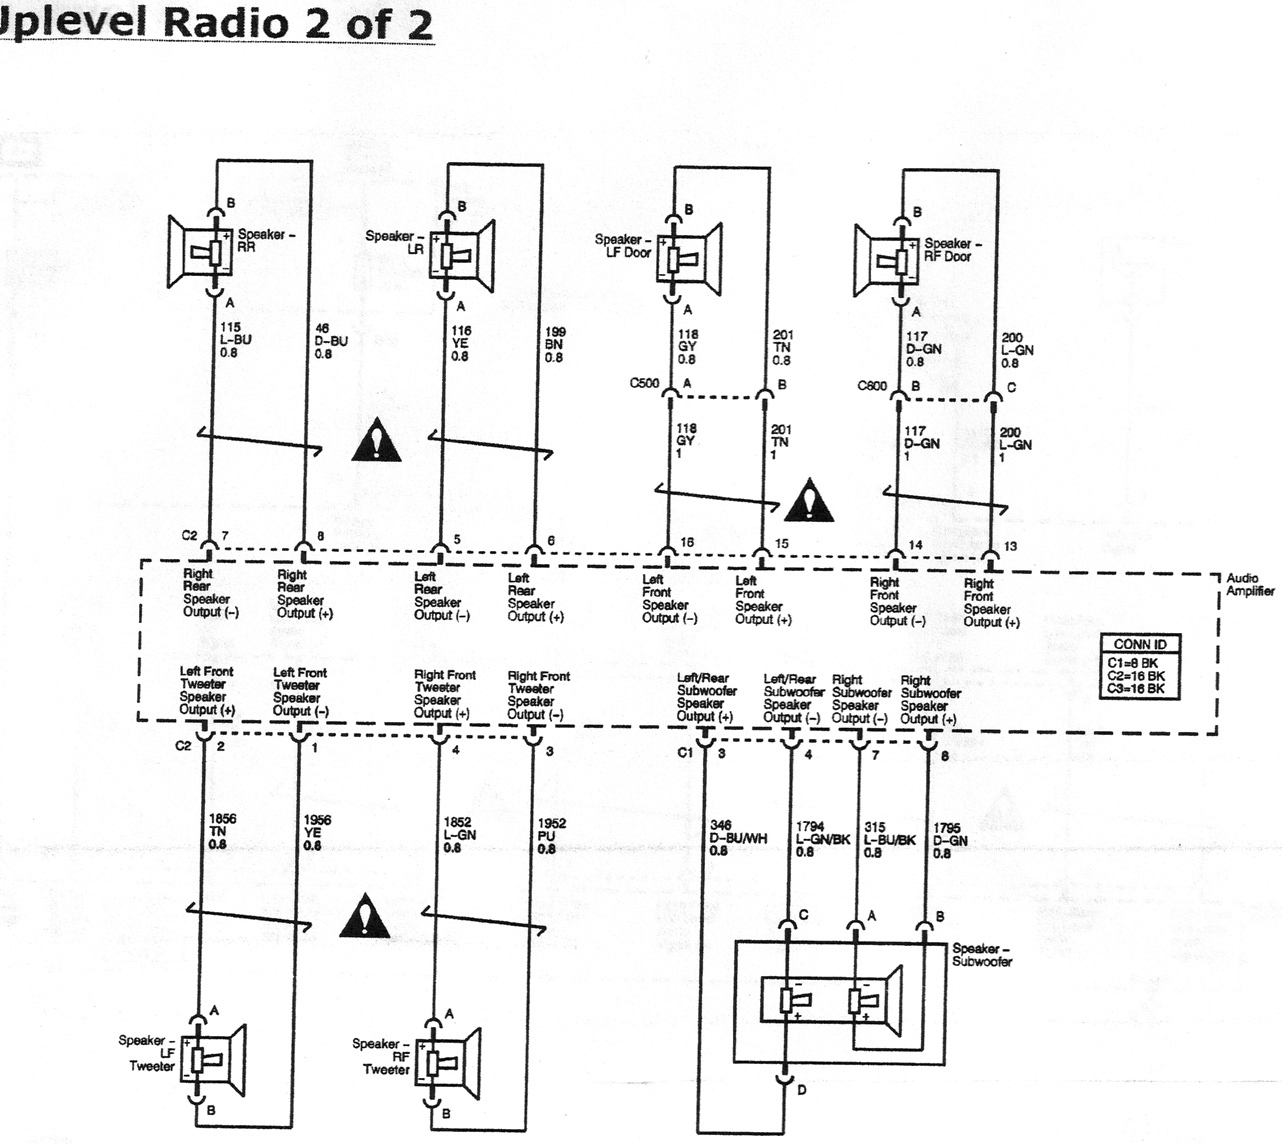 Gm Monsoon Radio Wiring Diagram | Wiring Diagram on